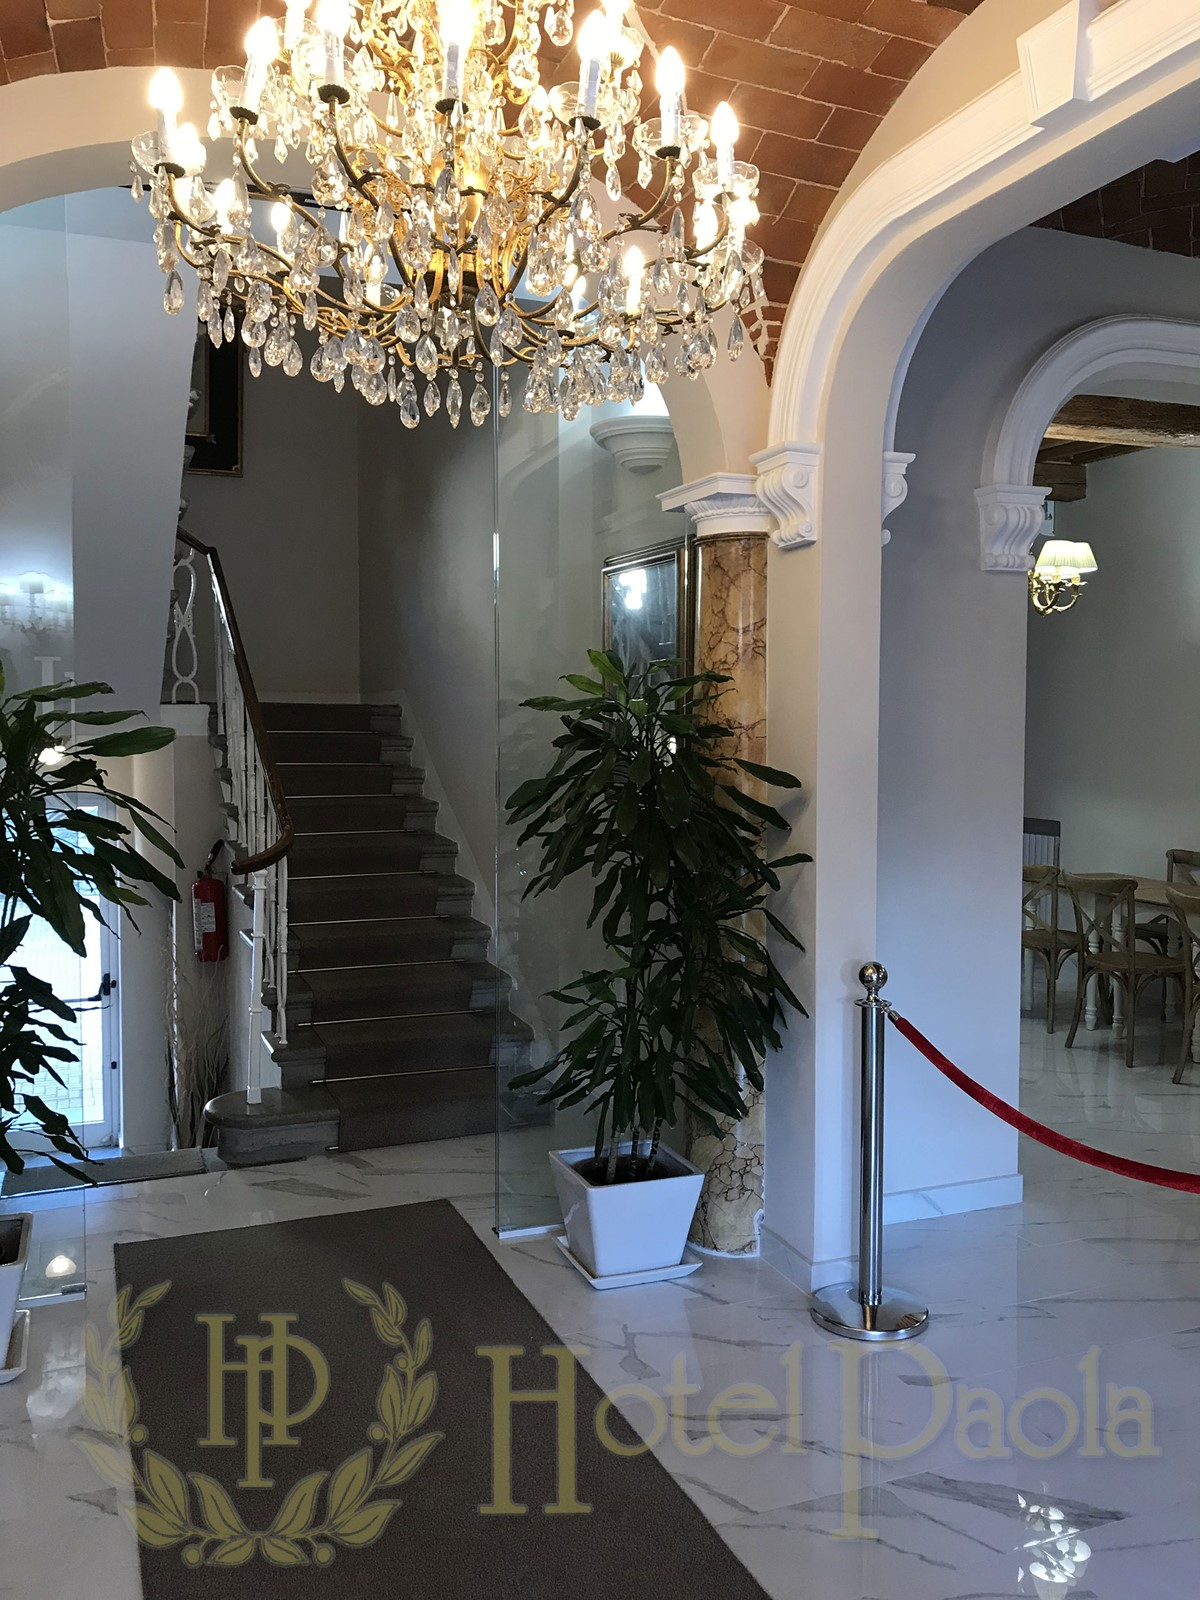 Hotel Paola Lucca